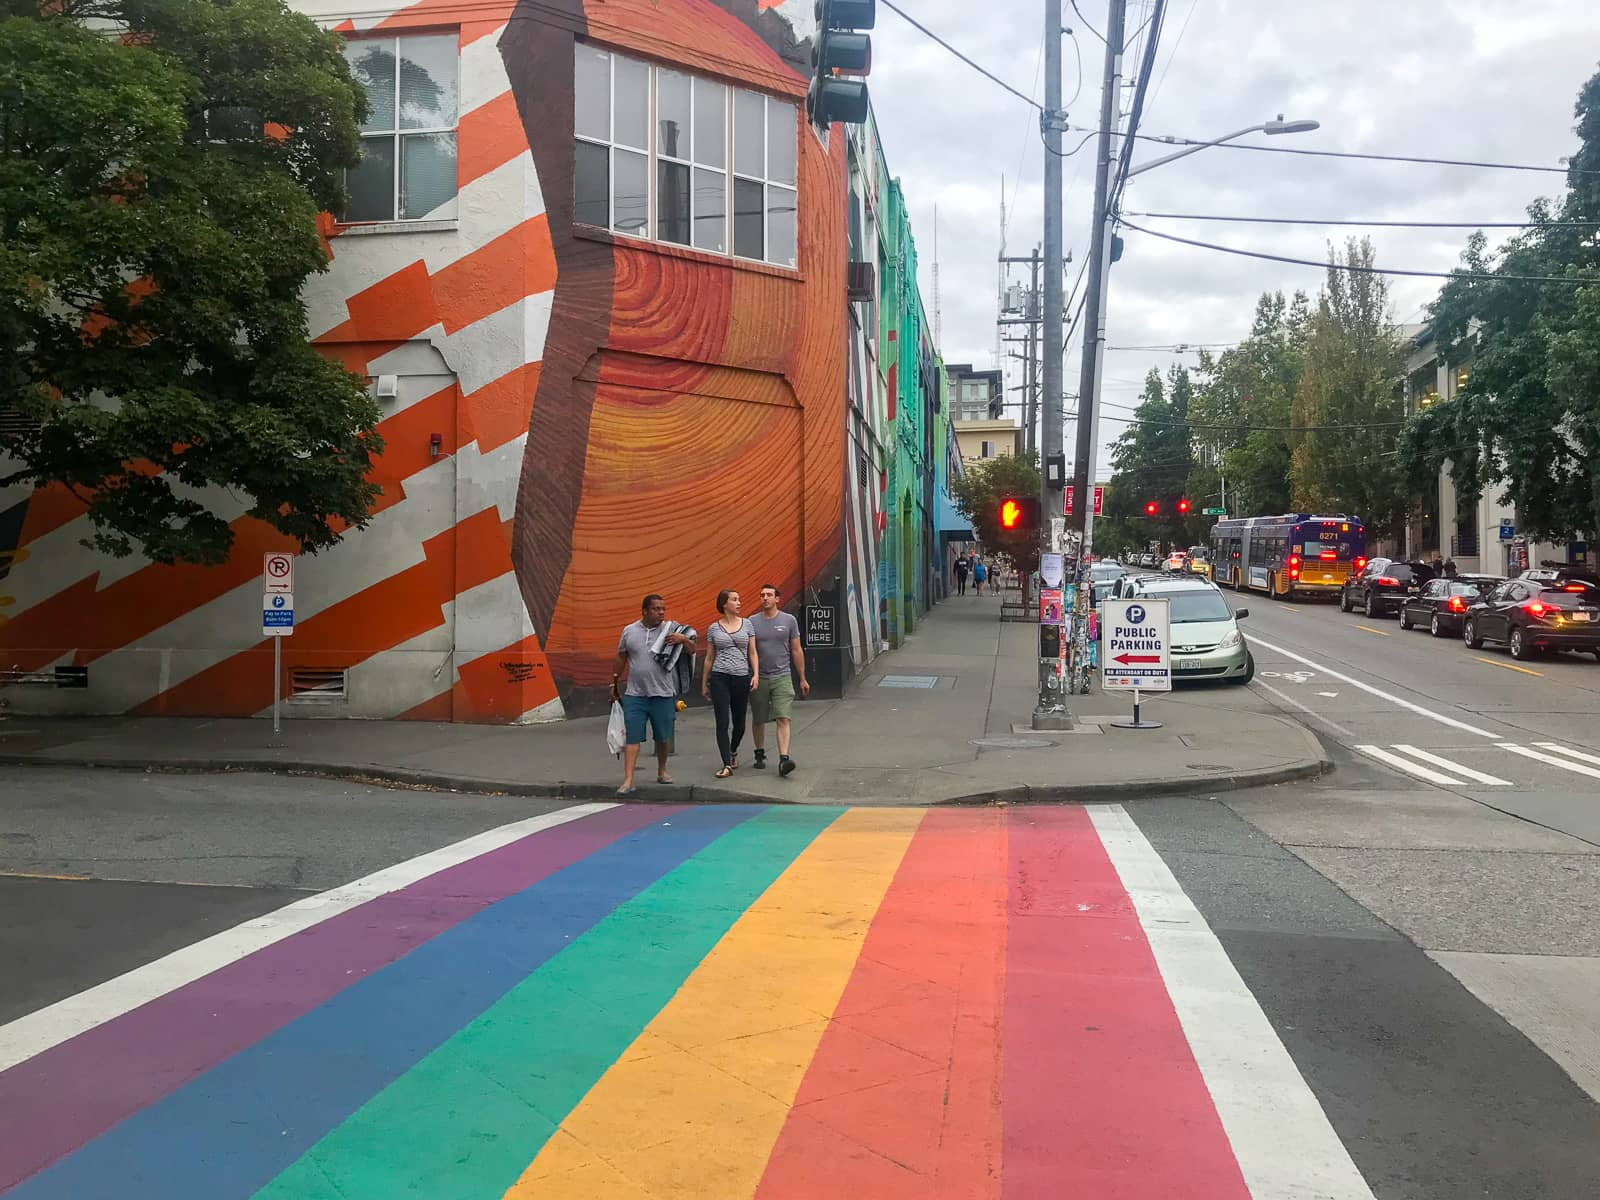 A pedestrian crossing painted in the colours of the rainbow. There are some pedestrians on the other side of the road waiting to cross, and the building behind them on the corner has a mural painted across its entire exterior